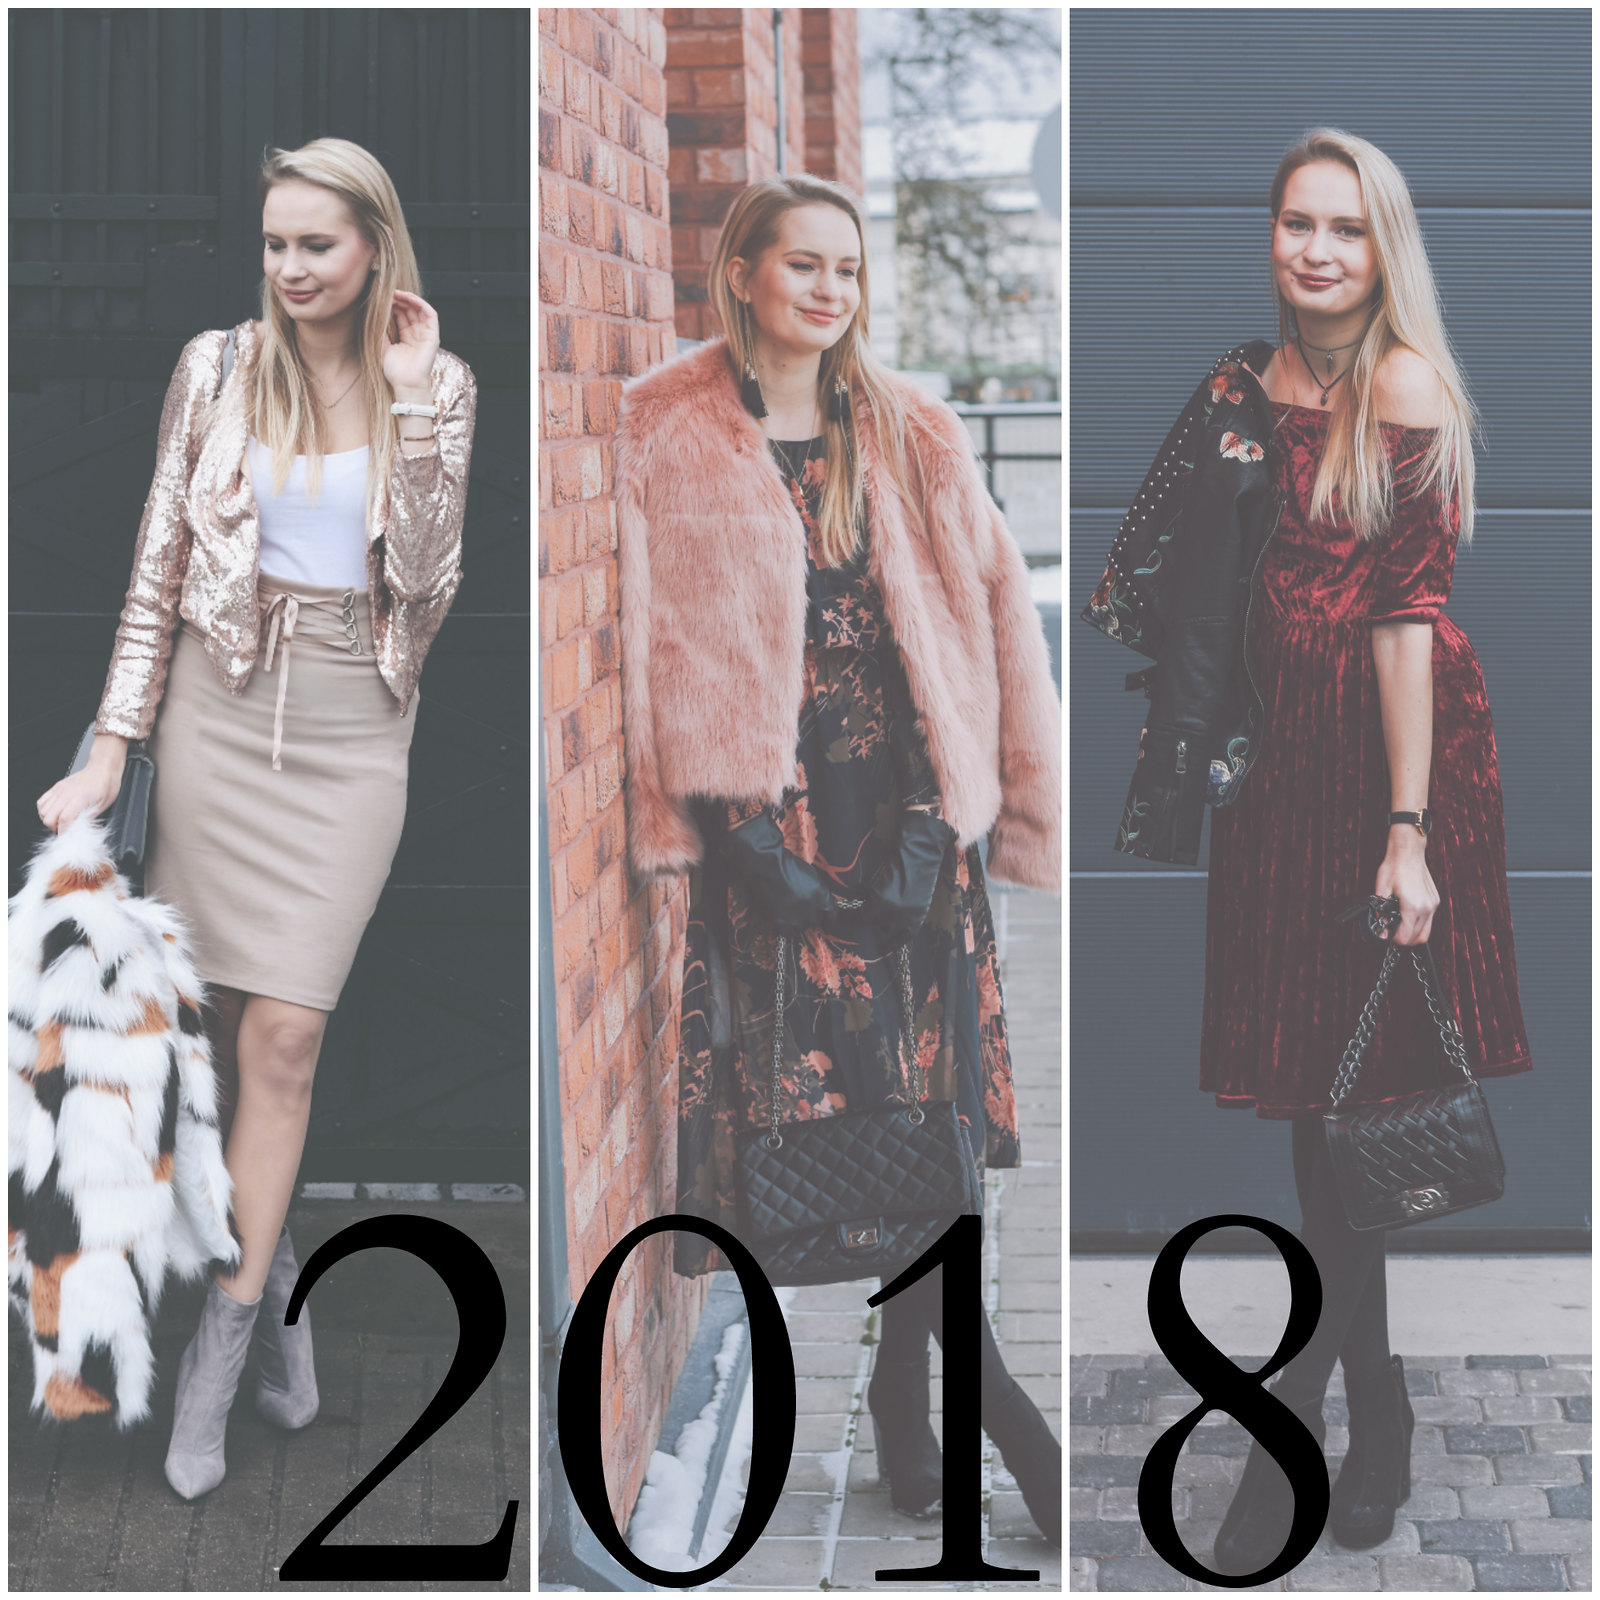 2018 outfits